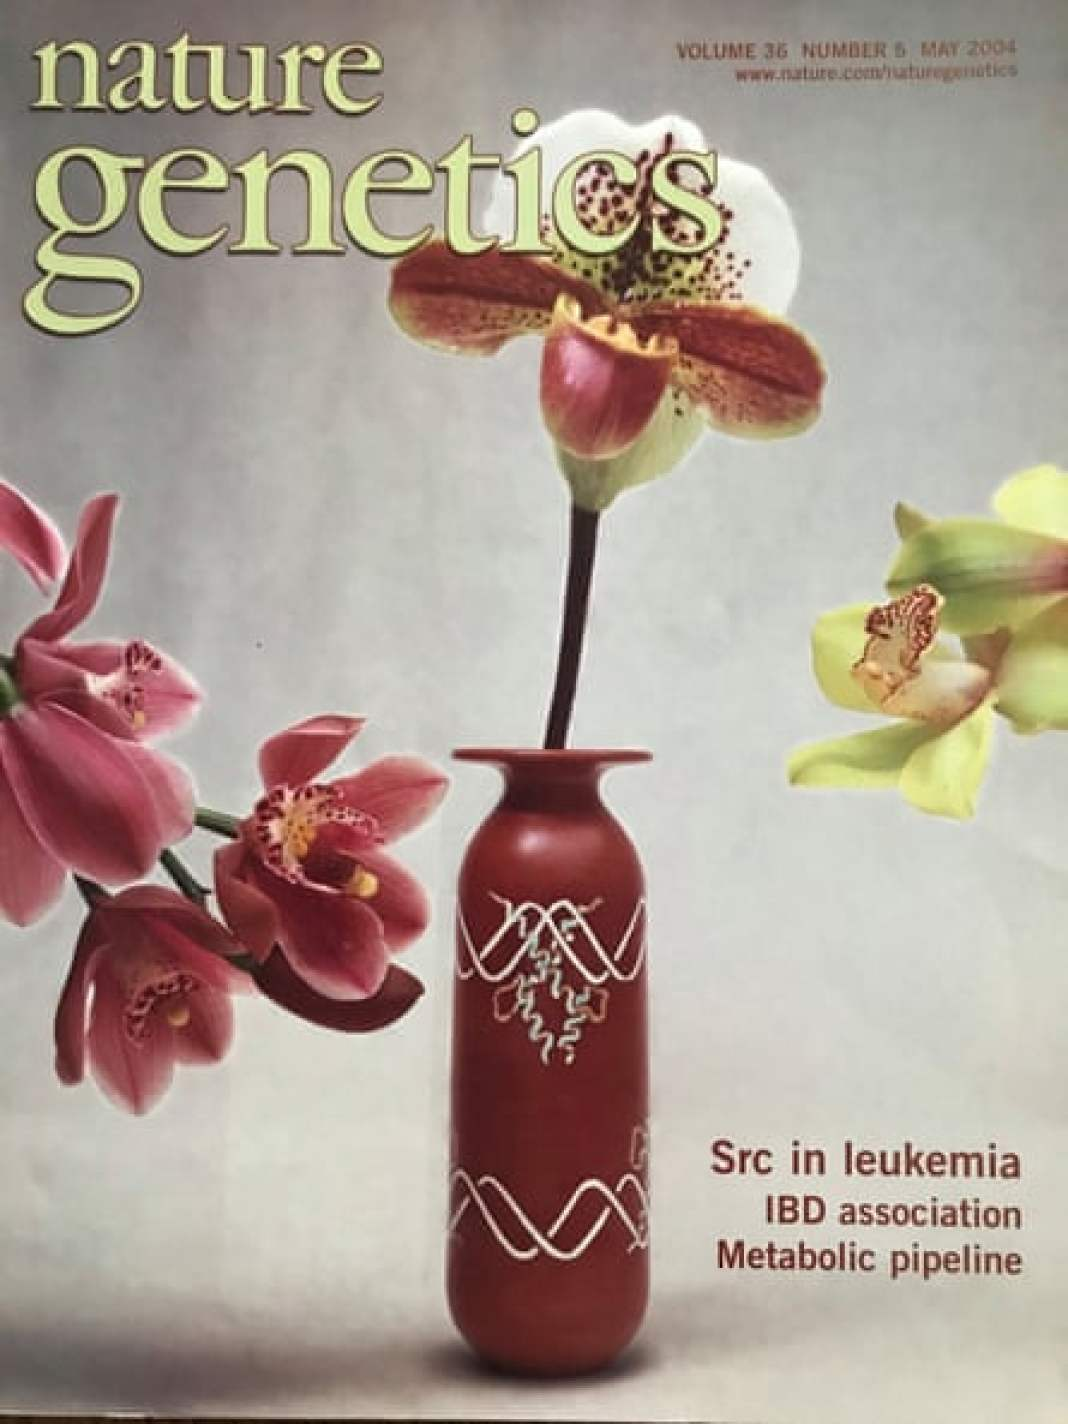 One of Larissa Wakefield's pots on the cover of Nature Genetics